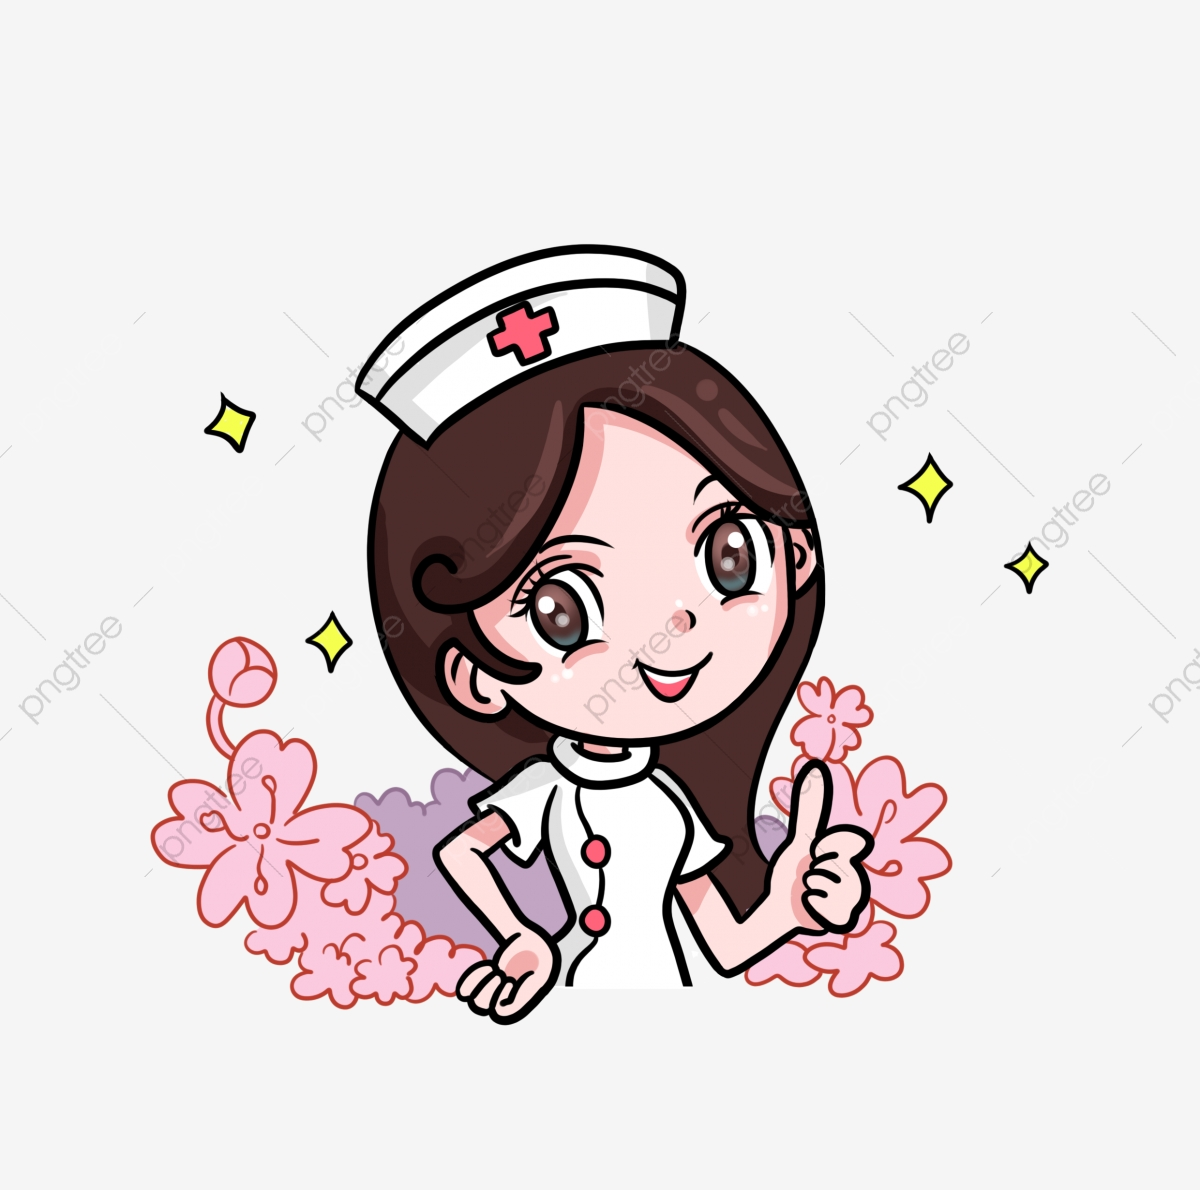 Nurse clipart medical field. Female doctors gentle and